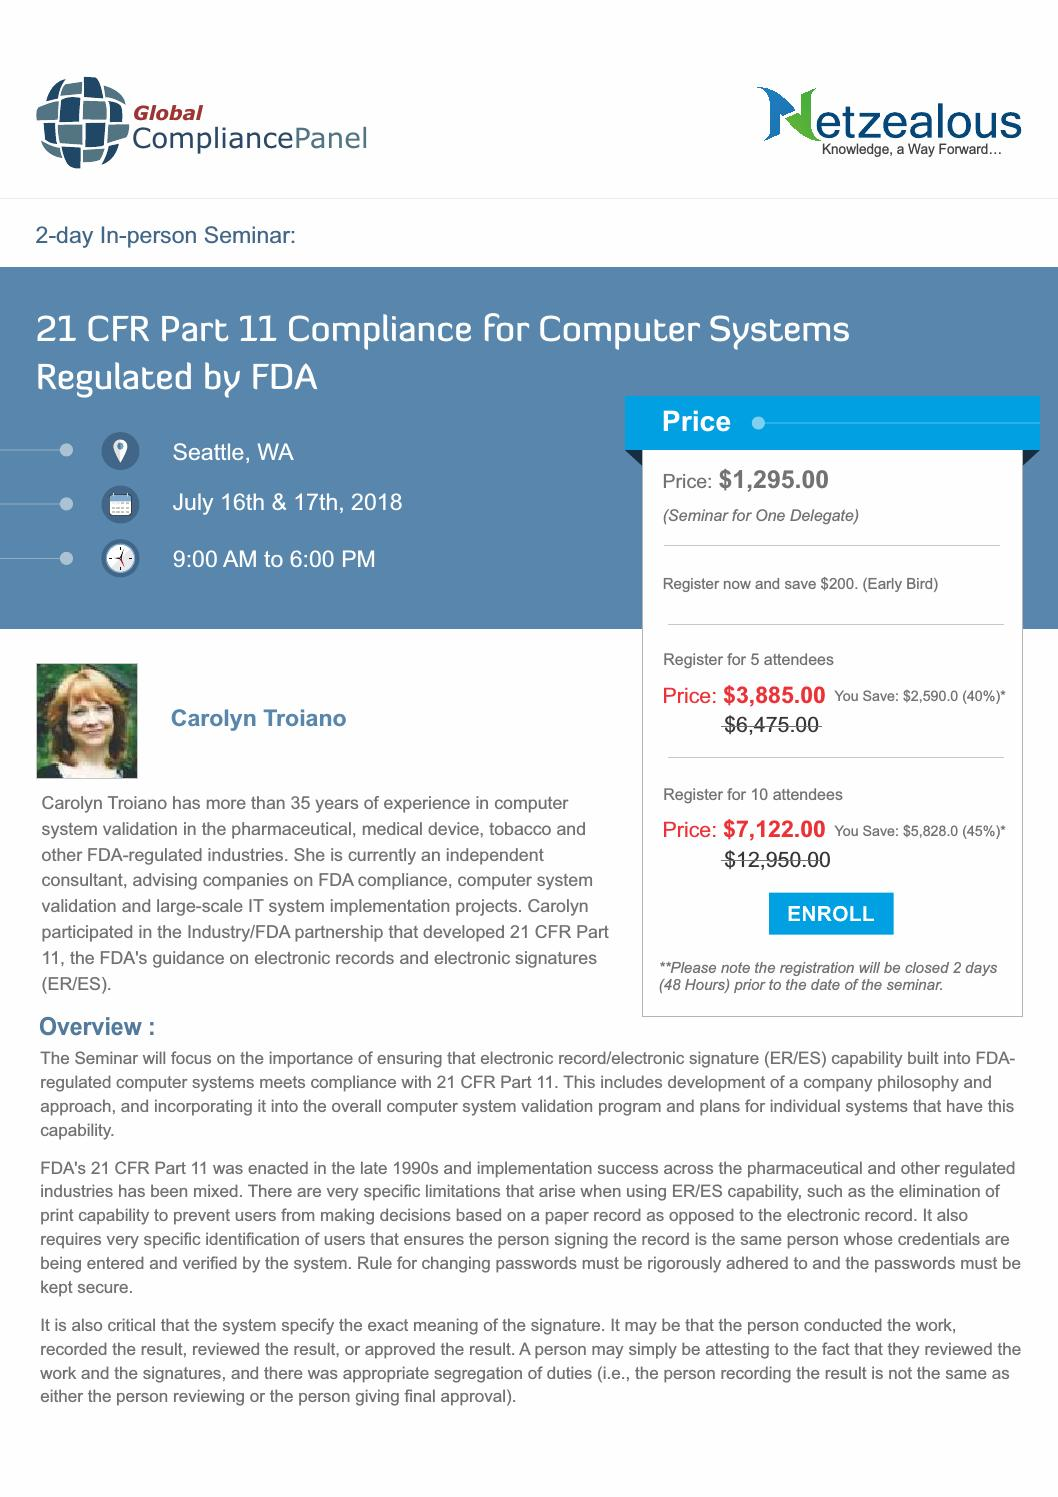 21 cfr part 11 compliance for computer systems regulated by fda by John  Robinson - issuu